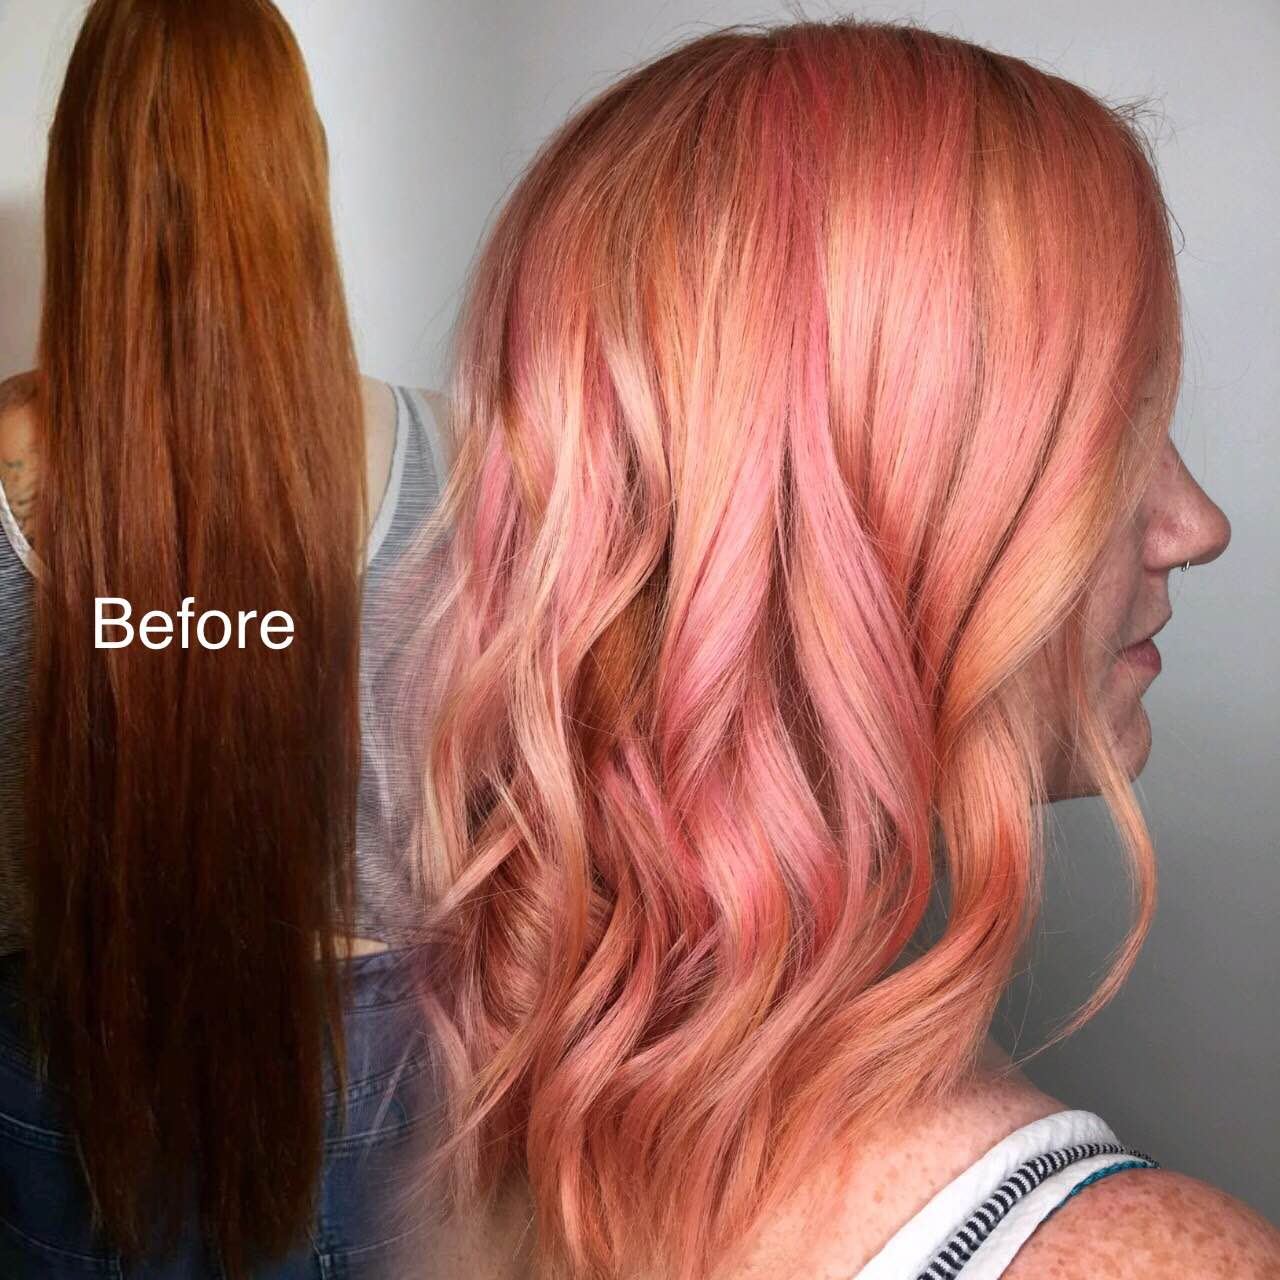 Makeover: Crazy Long To Dimensional Pink/Rose Gold